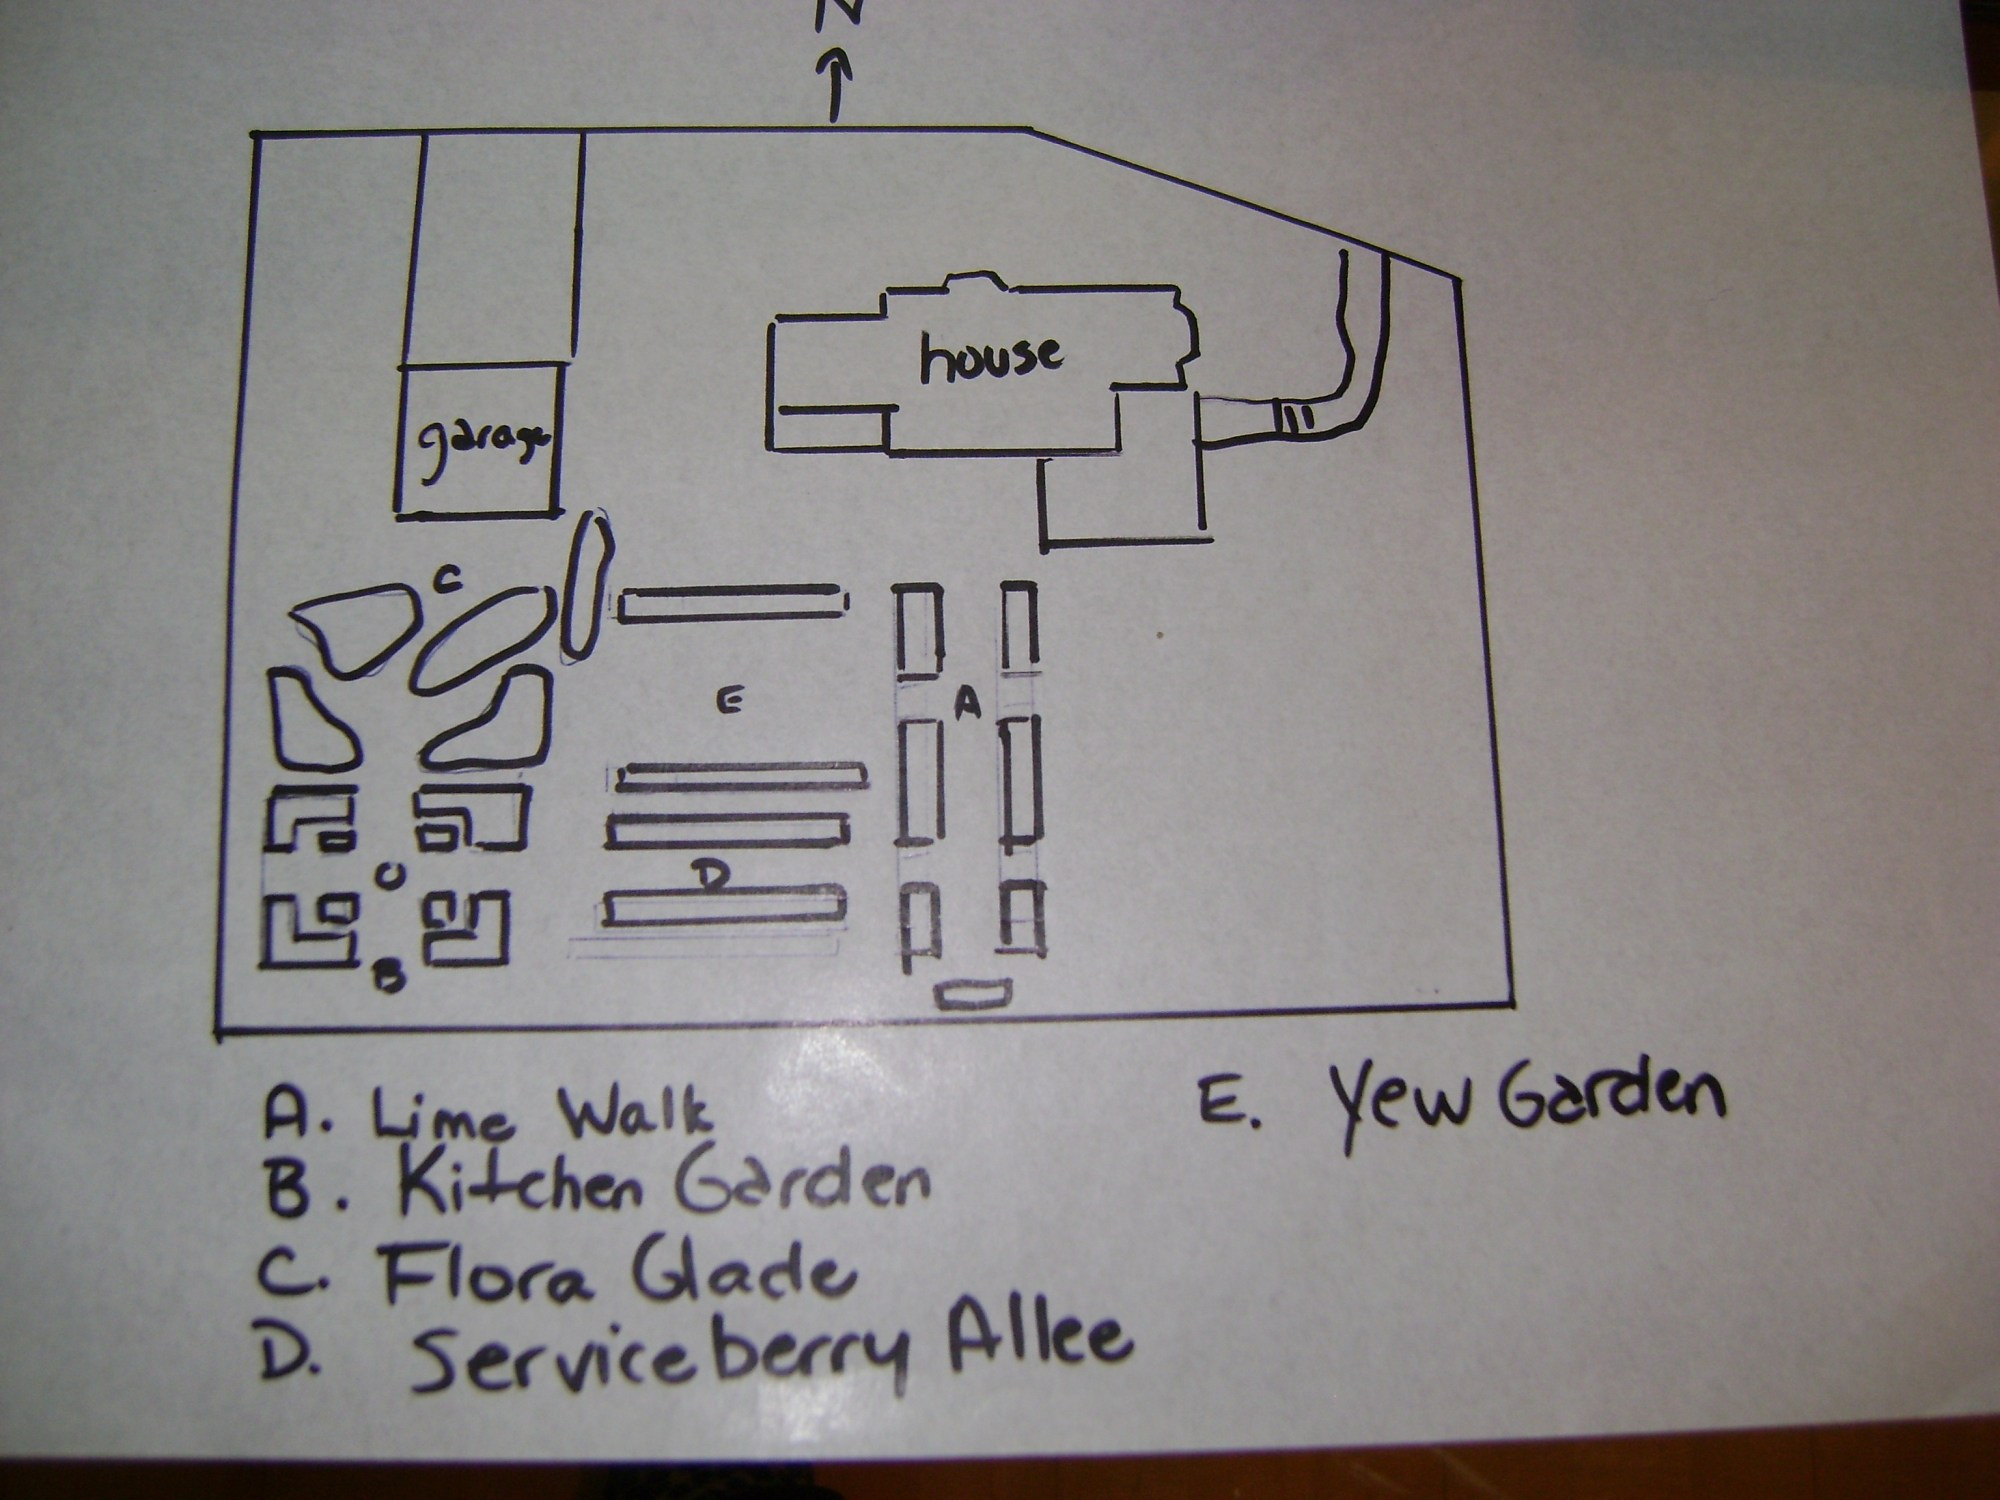 hight resolution of gardenoct09 021 jacobs mileage master wiring diagram troubleshooting diagrams jacobs electronics mileage master